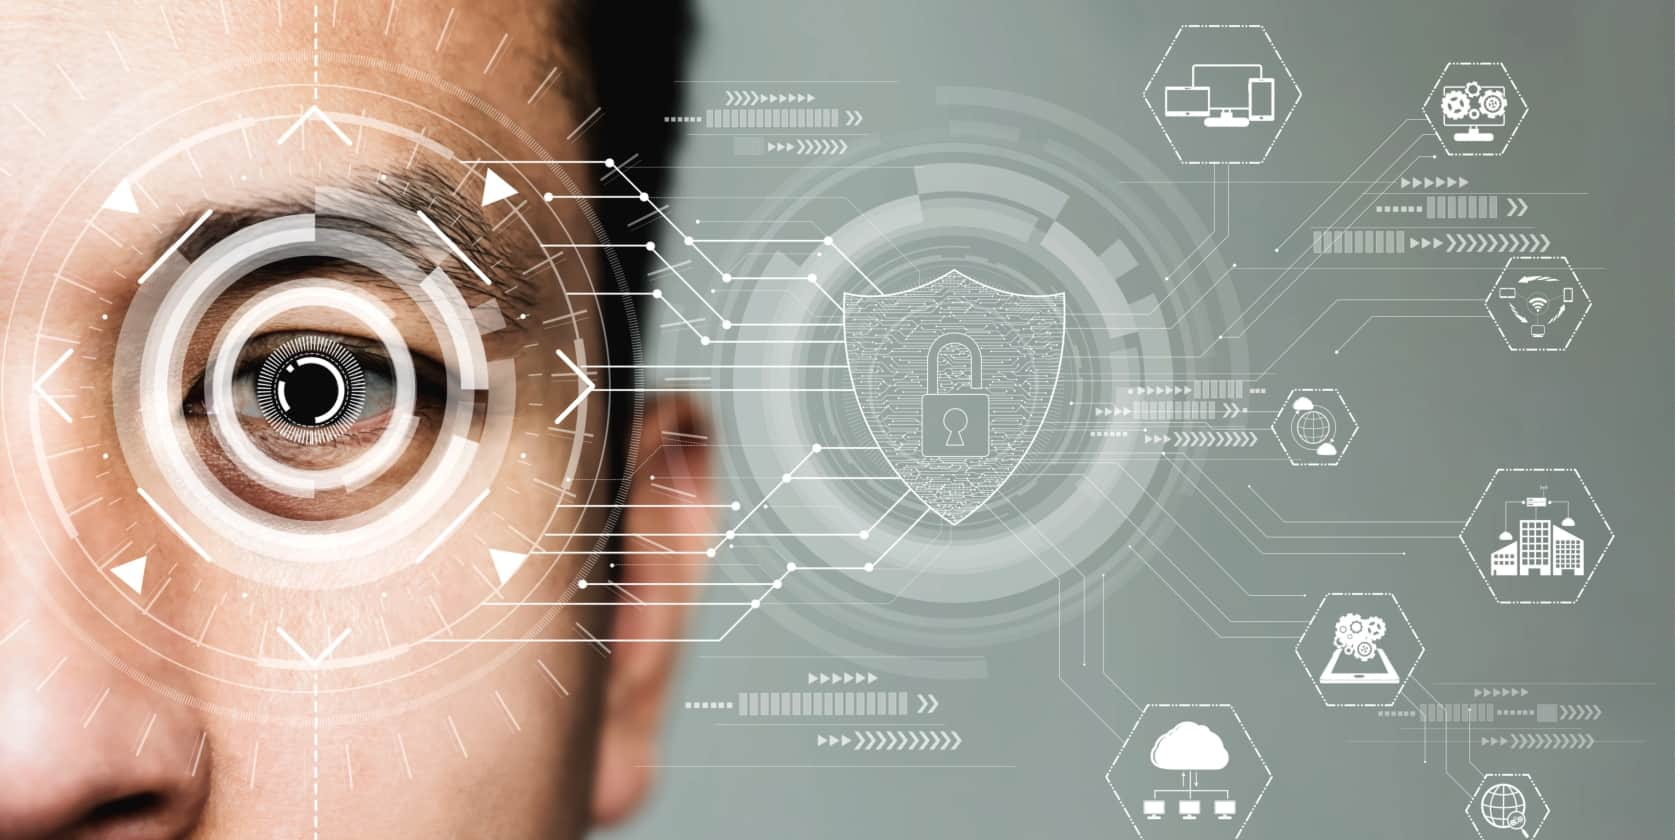 Building 'Human-Centric AI' for Secure and Liable Future